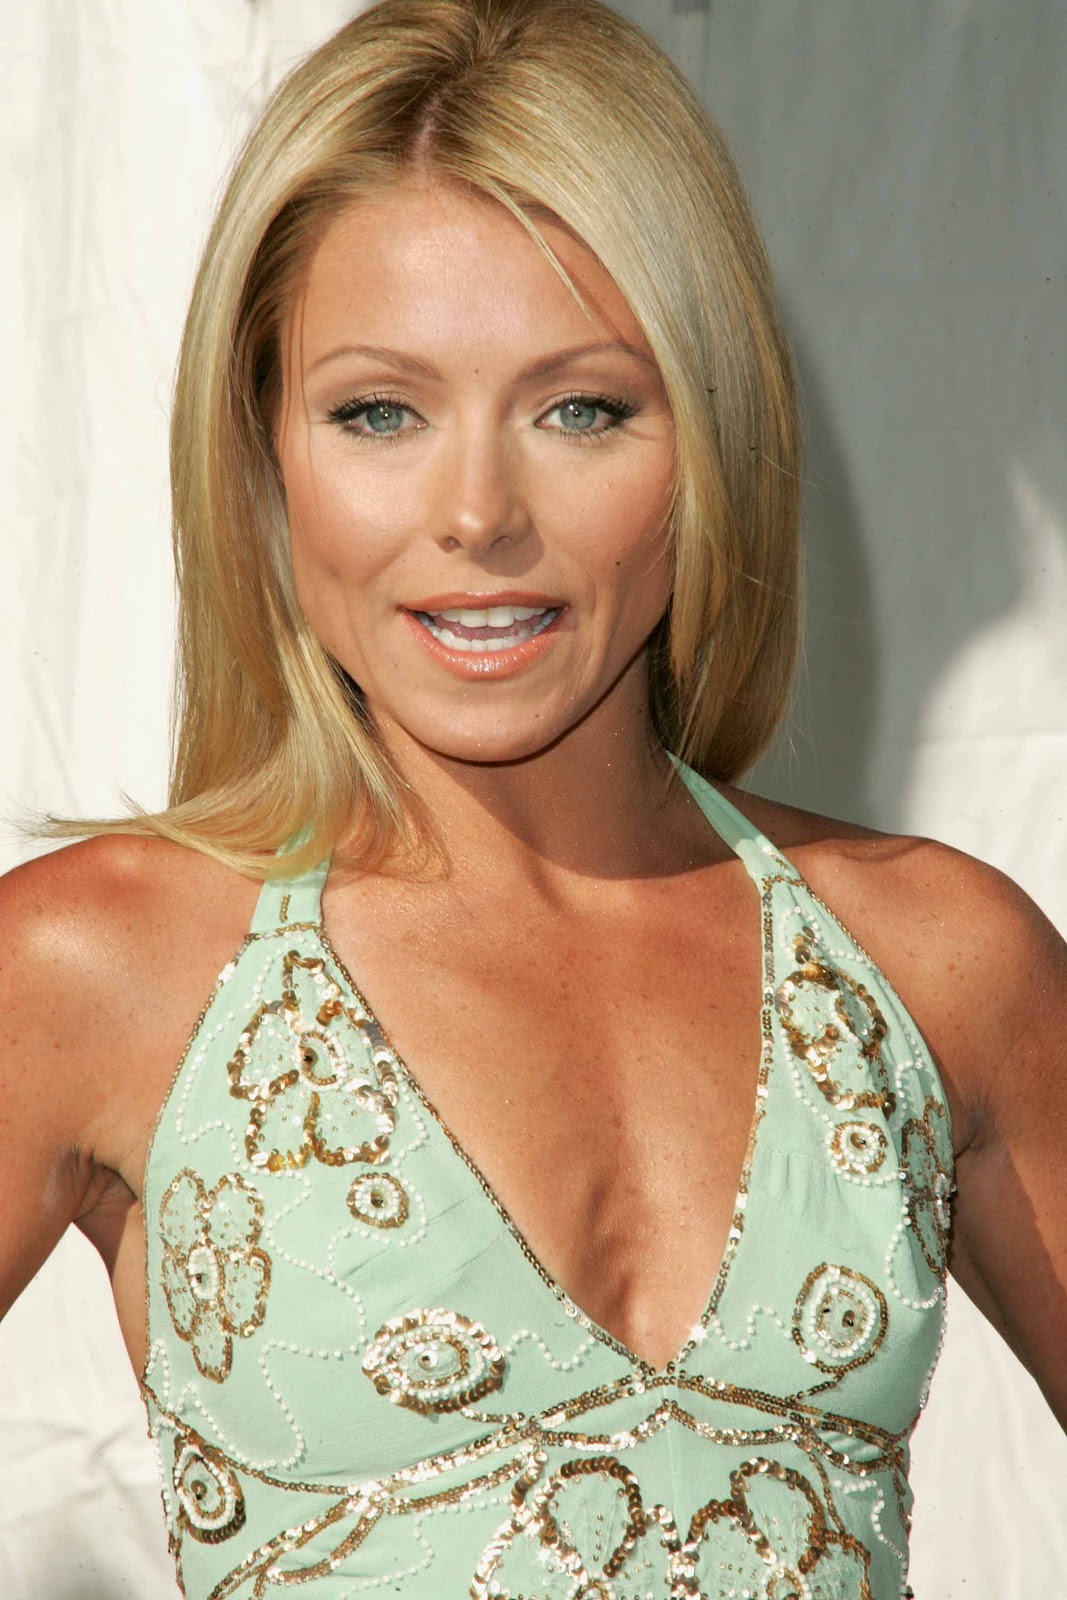 Kelly Ripa Short Hair, Kelly Ripa Fashion, Kelly Ripa Hairstyles 2010